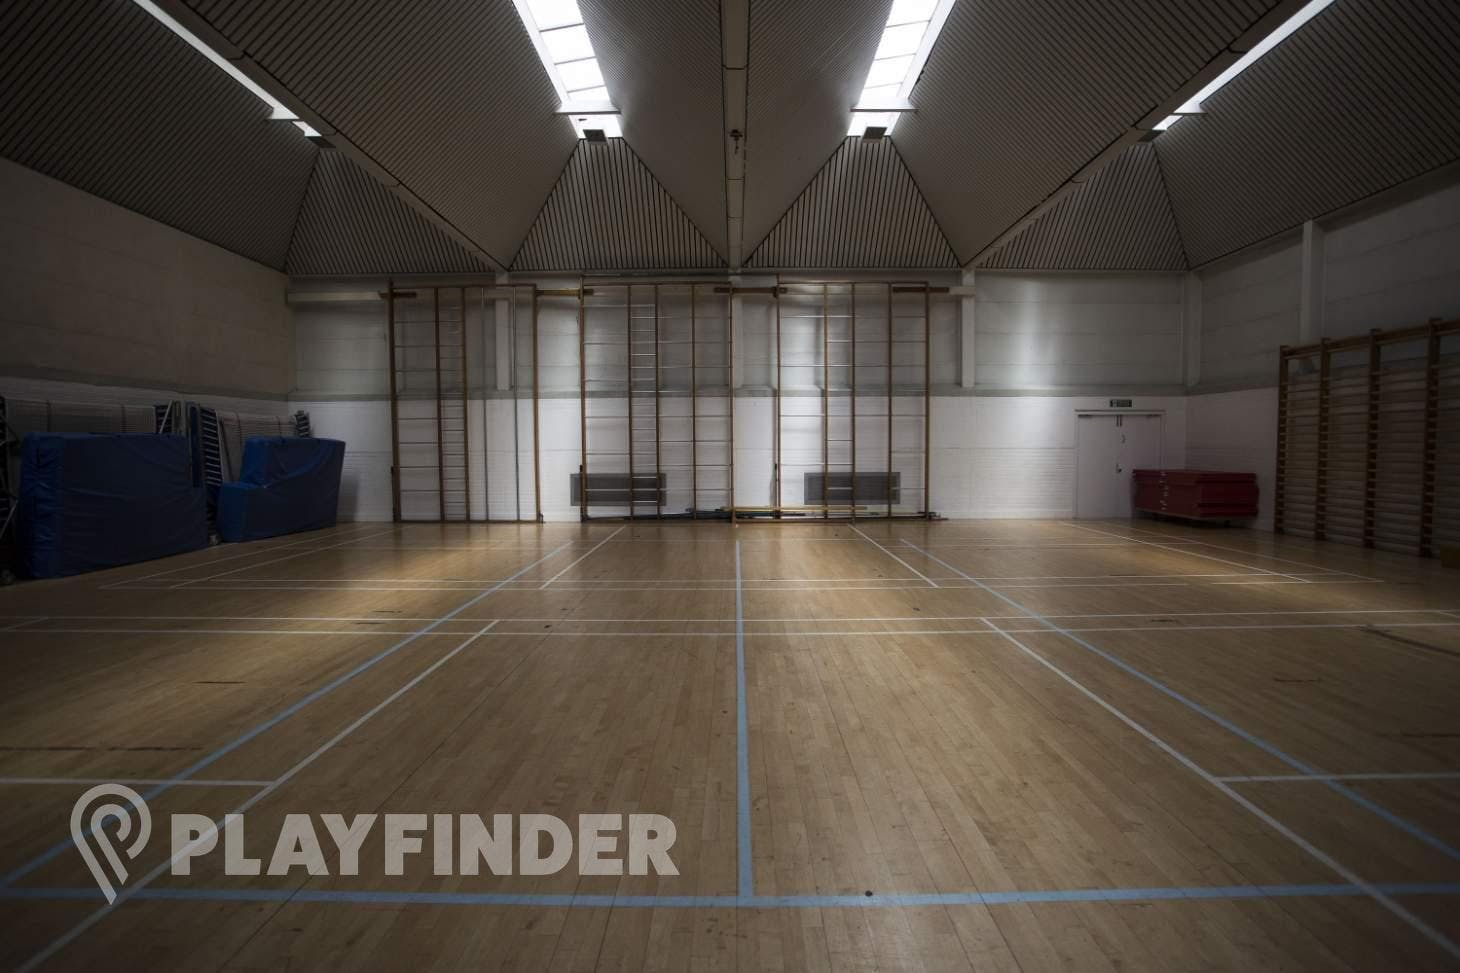 Acland Burghley School Gymnasium space hire